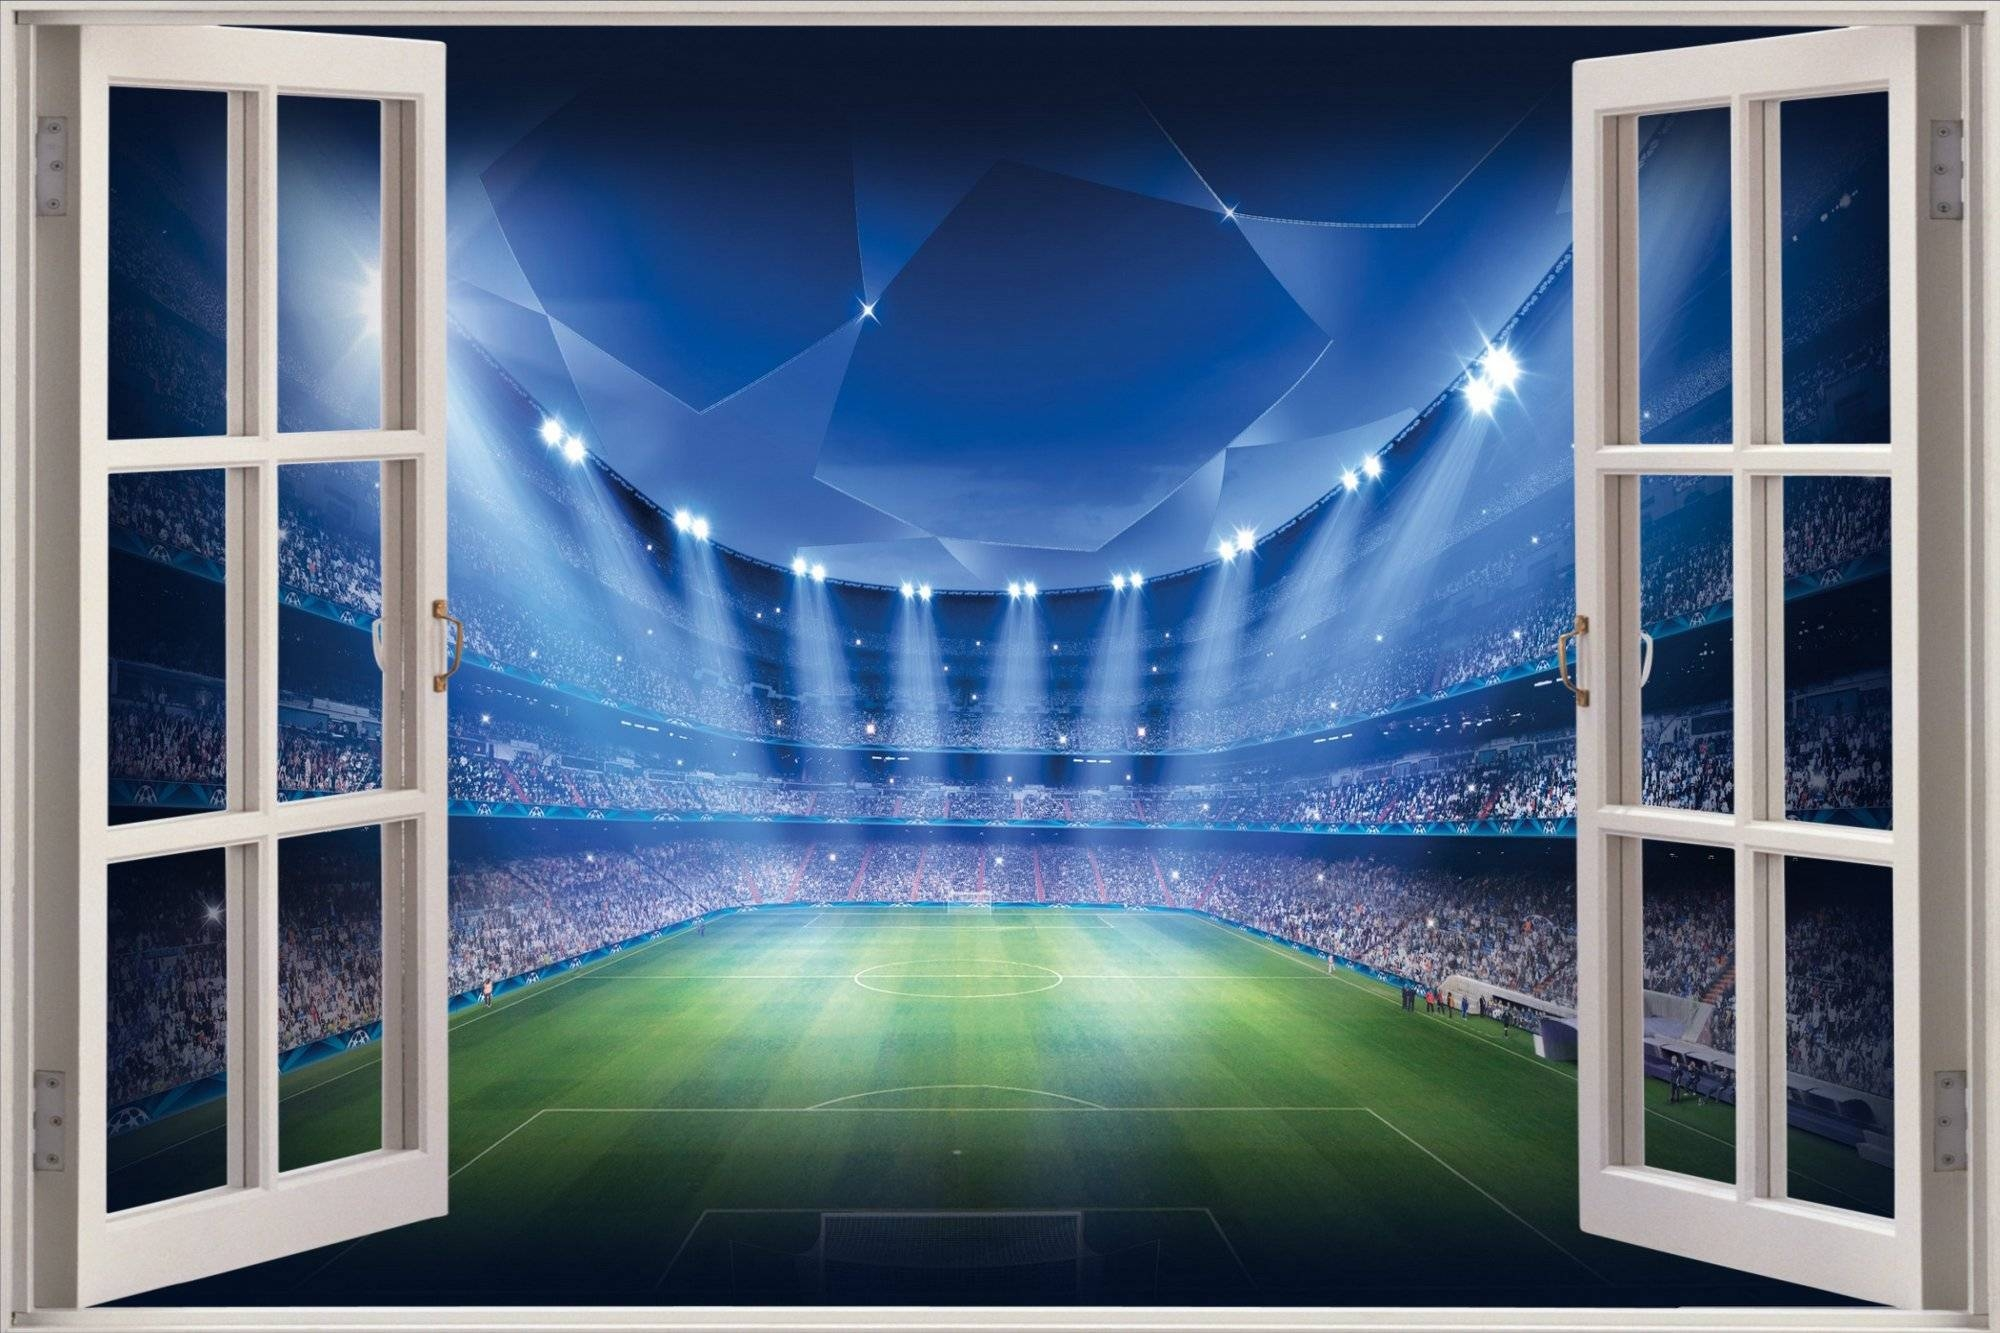 3D Wall Art Football | Wallartideas Throughout Latest Football 3D Wall Art (Gallery 1 of 20)